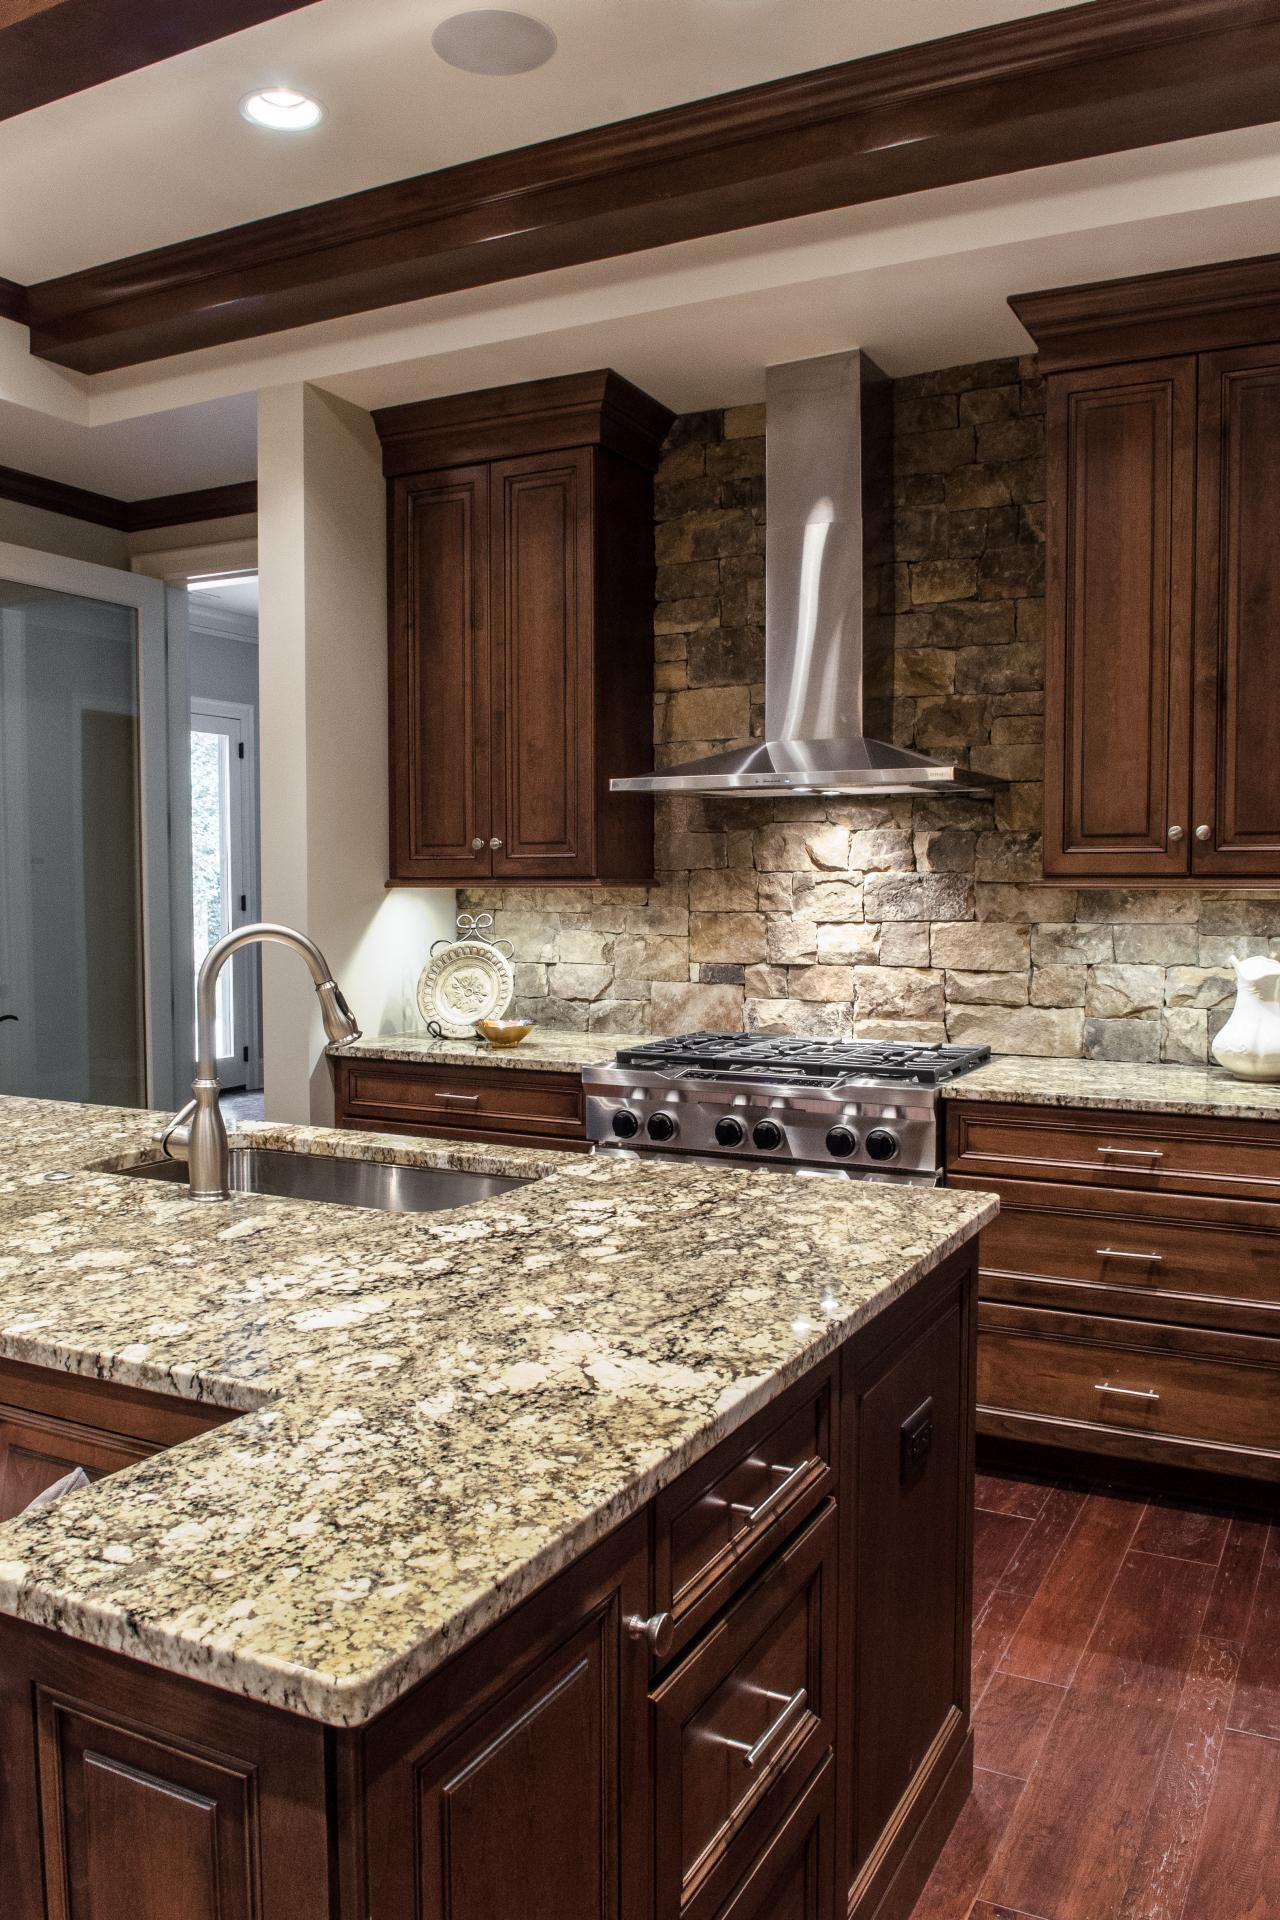 Custom wood cabinets and gray, stone countertops are top ... on Backsplash Ideas For Black Granite Countertops And Cherry Cabinets  id=56879